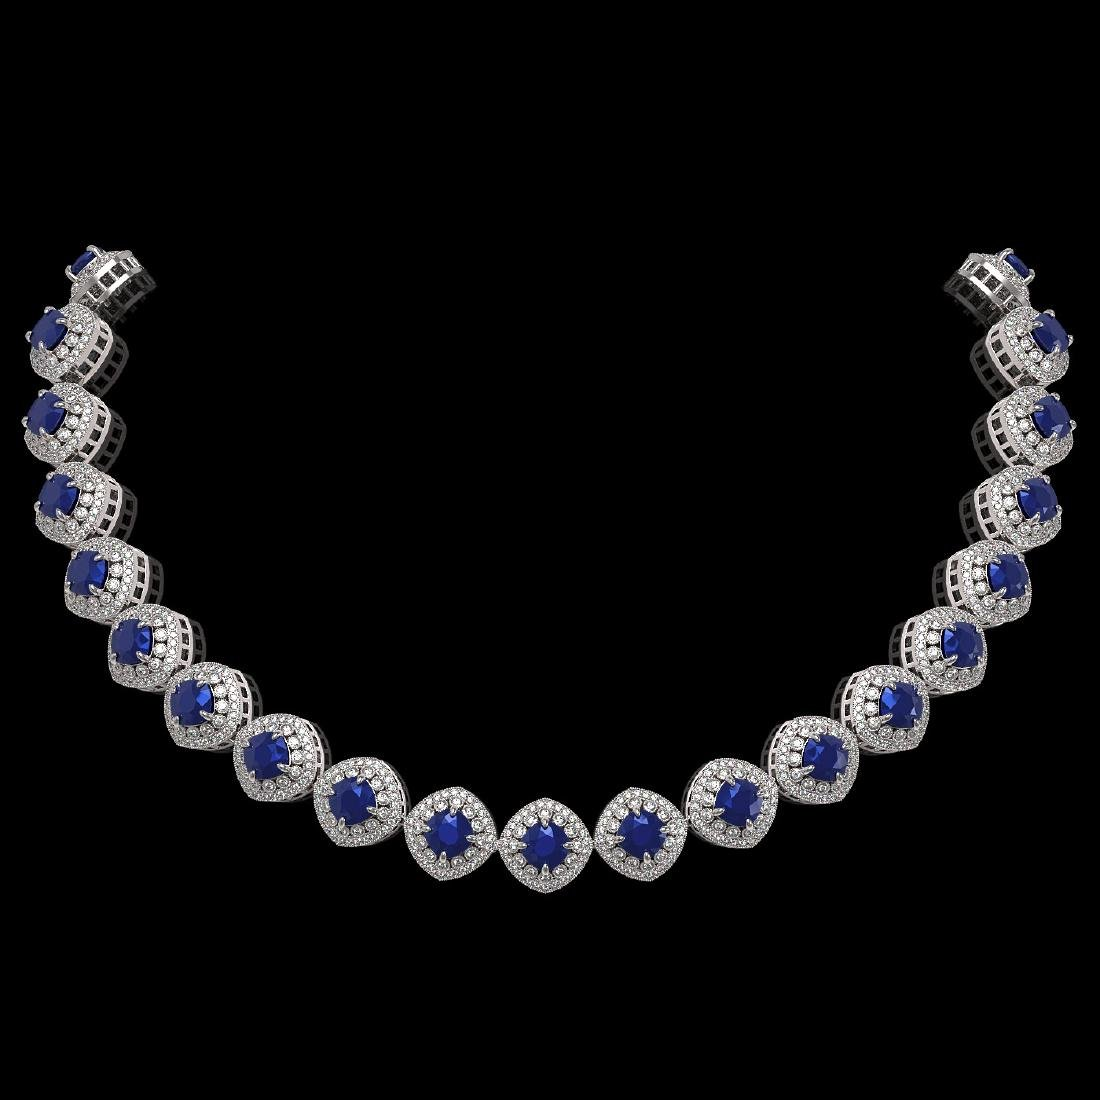 82.17 ctw Sapphire & Diamond Necklace 14K White Gold -